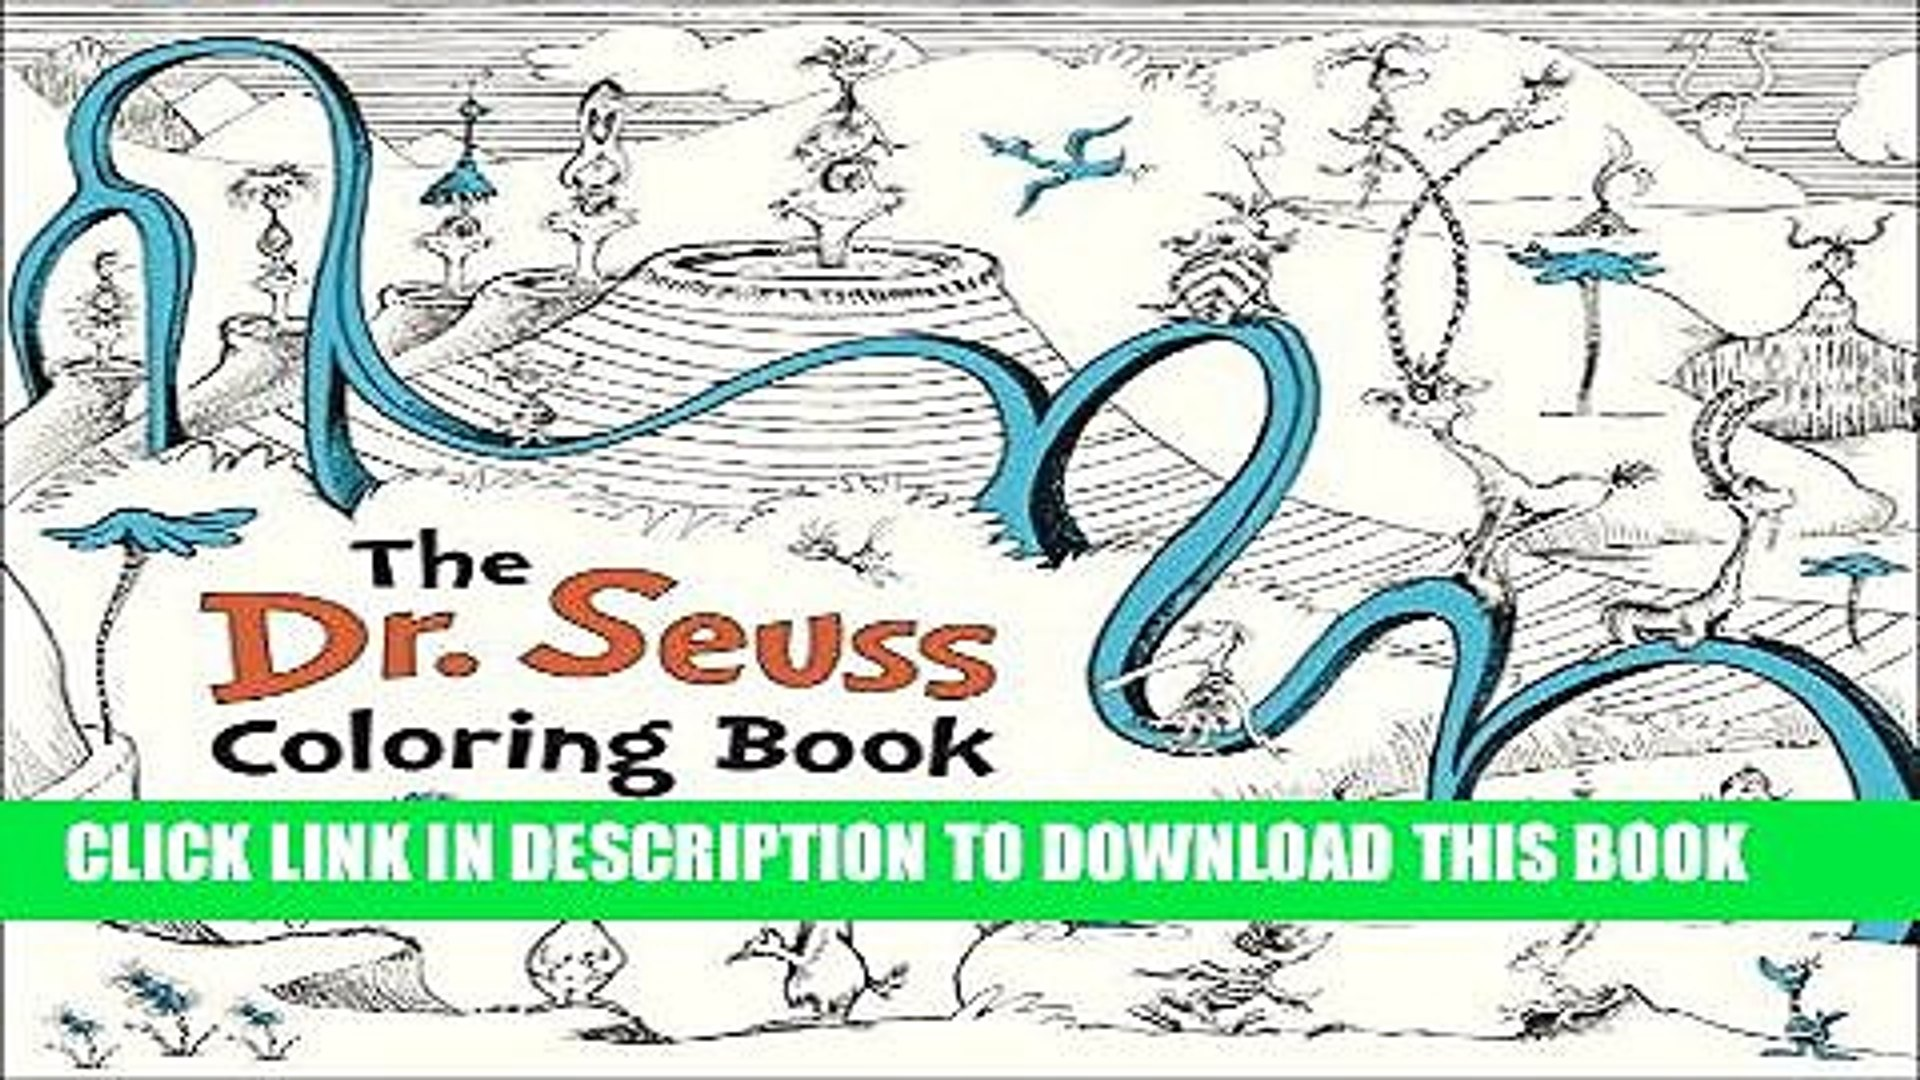 [Ebook] The Dr. Seuss Coloring Book Download Free